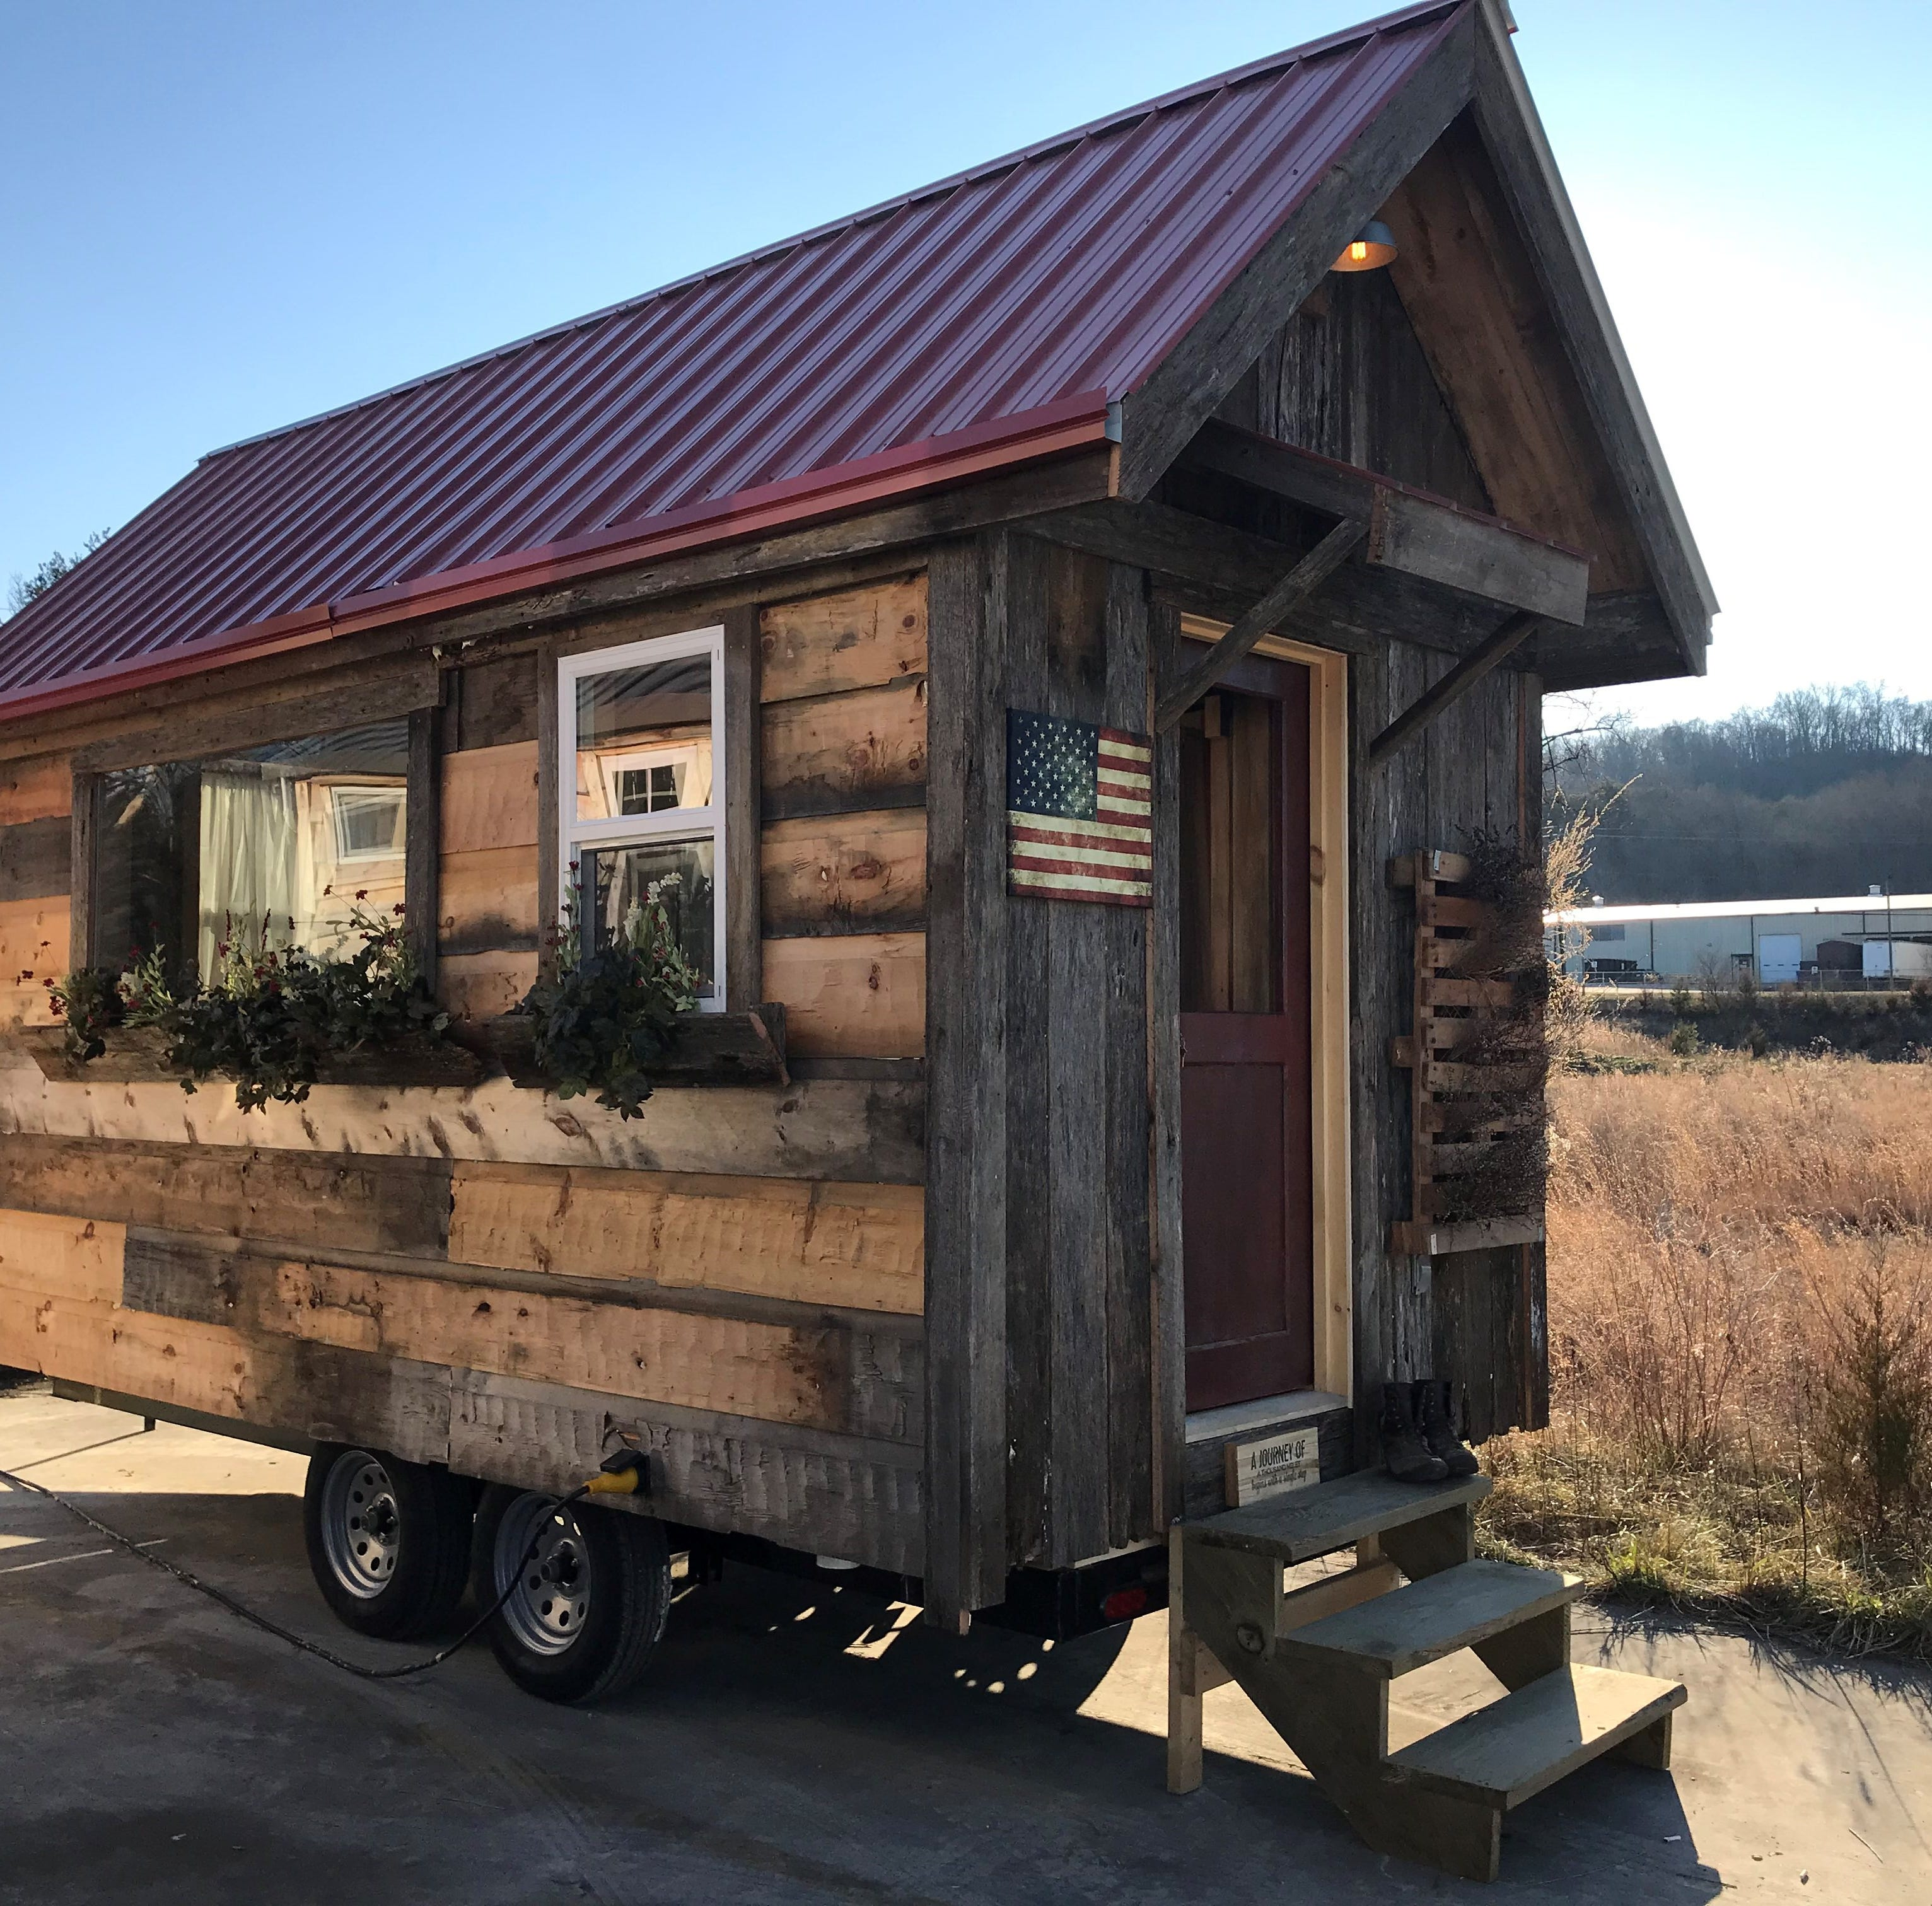 Tiny homes may be answer to affordable housing, homelessness